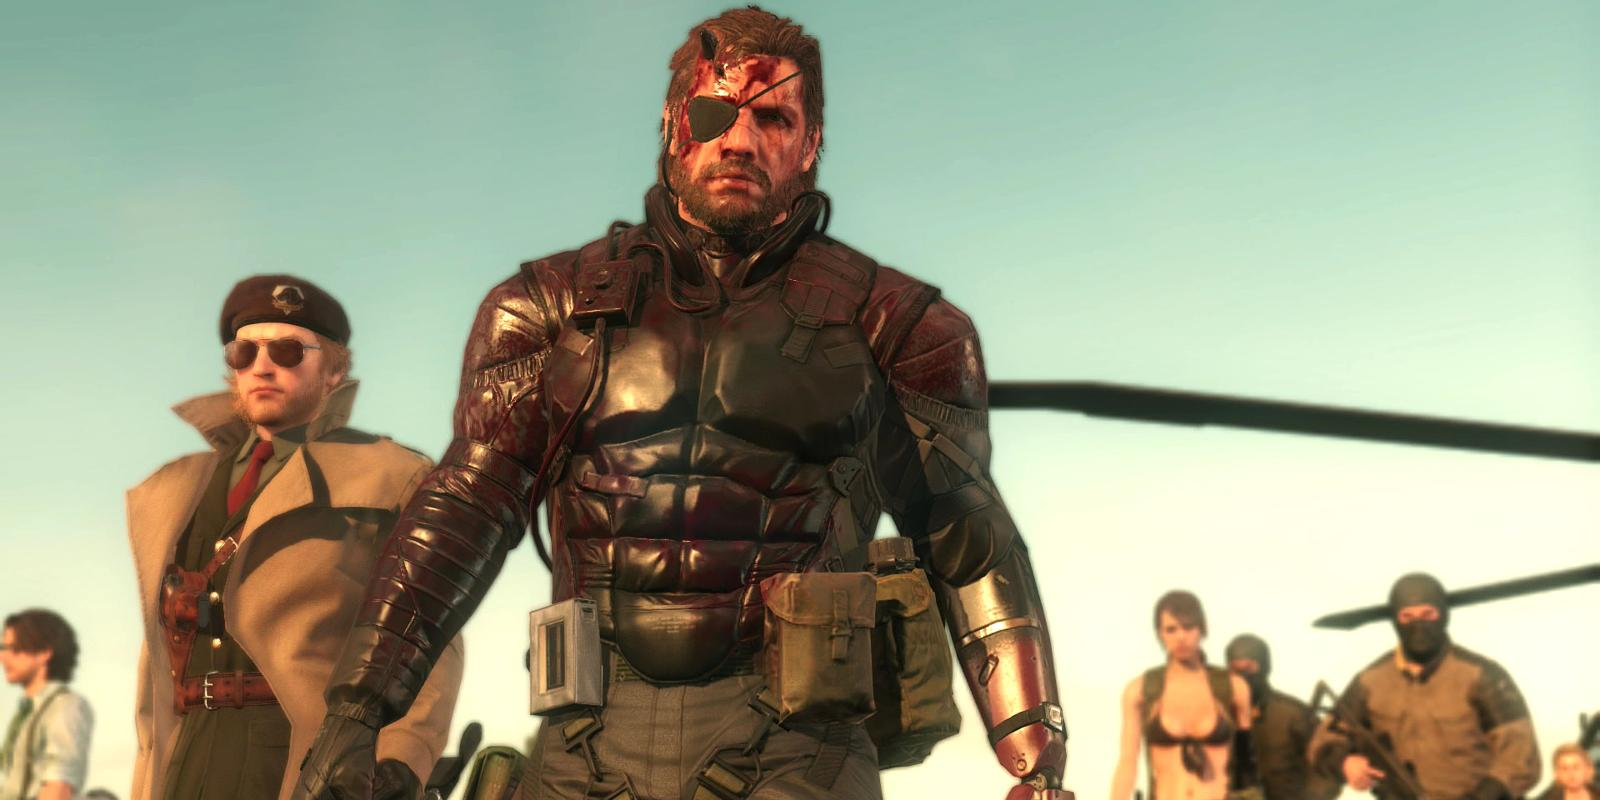 Former Snake Voice Actor David Hayter Refuses To Play Metal Gear Solid 5 The Phantom Pain